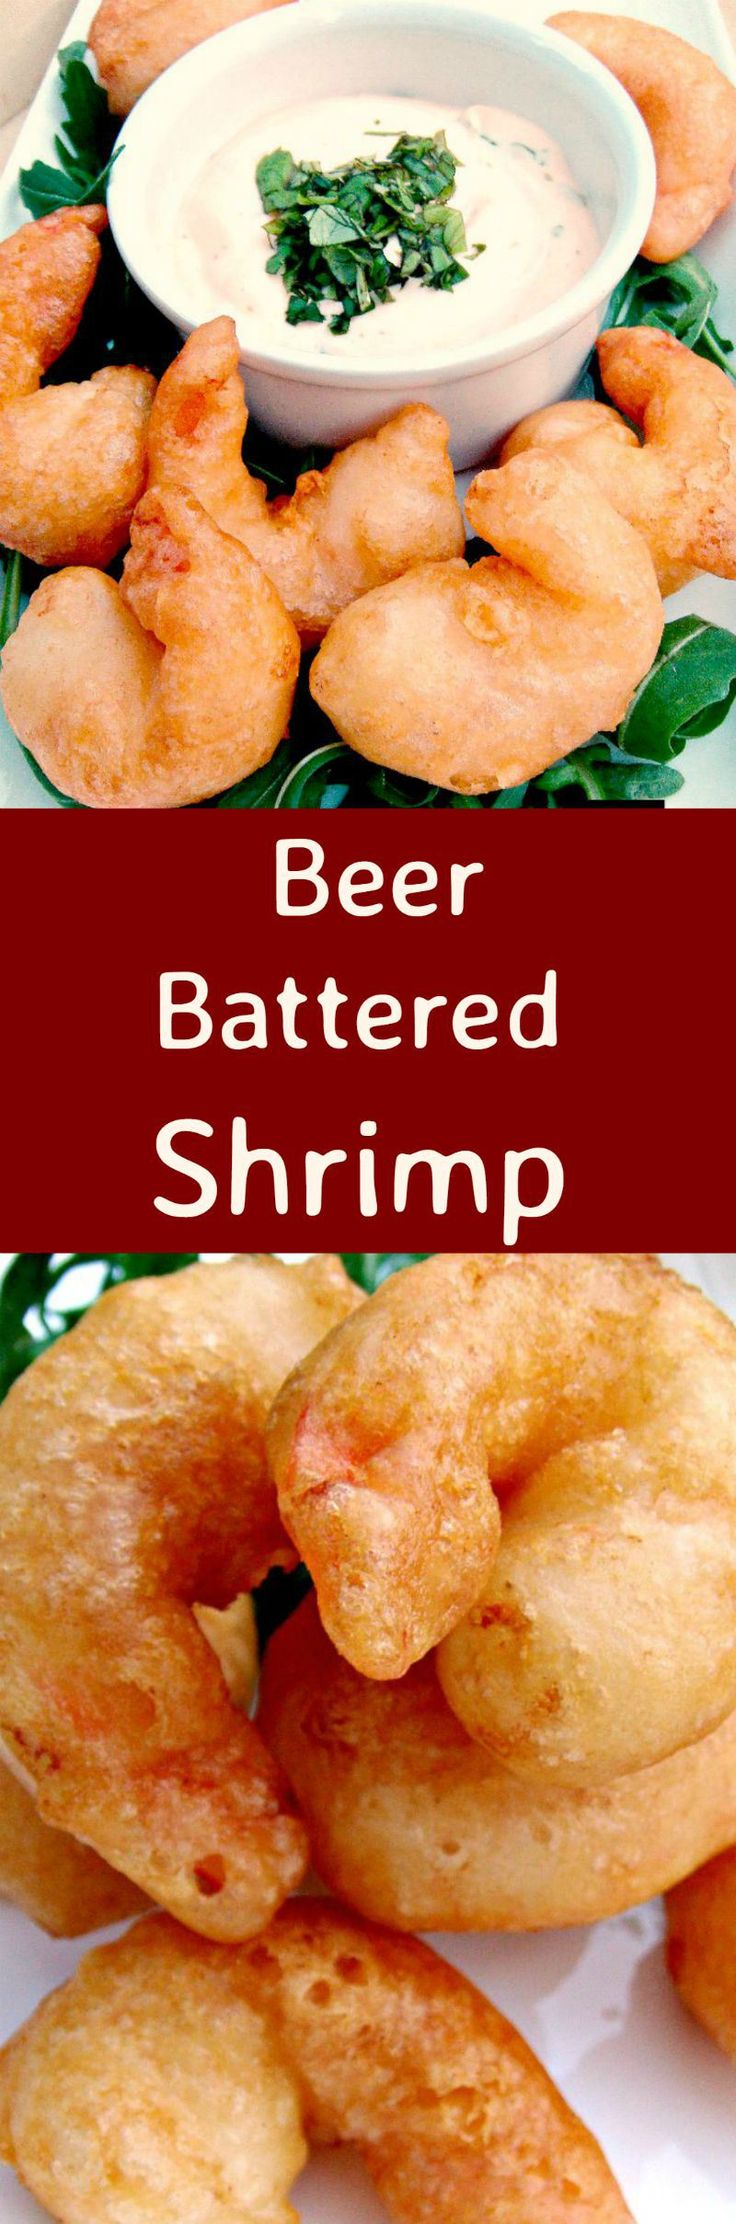 how to make shrimp crispy without frying